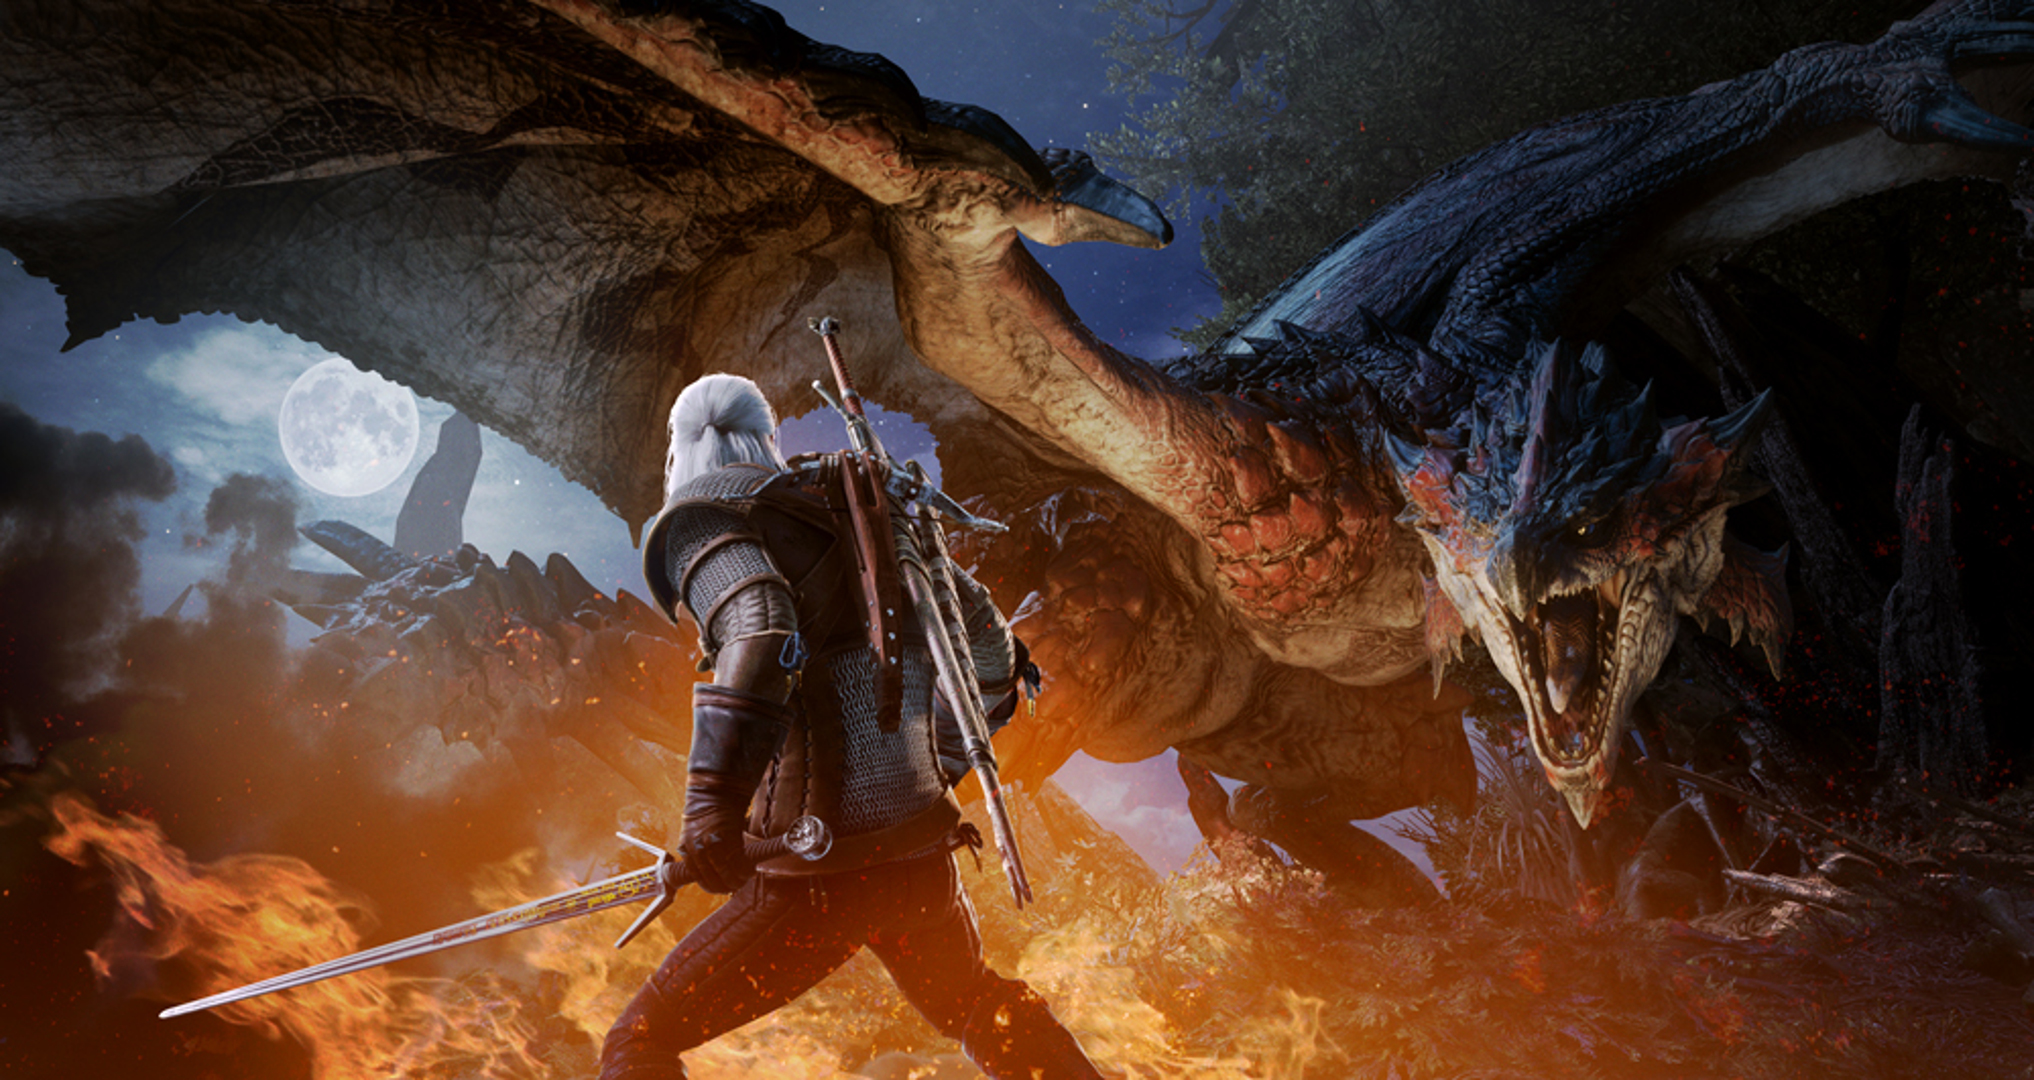 Monster Hunter World x The Witcher 3 Collaboration